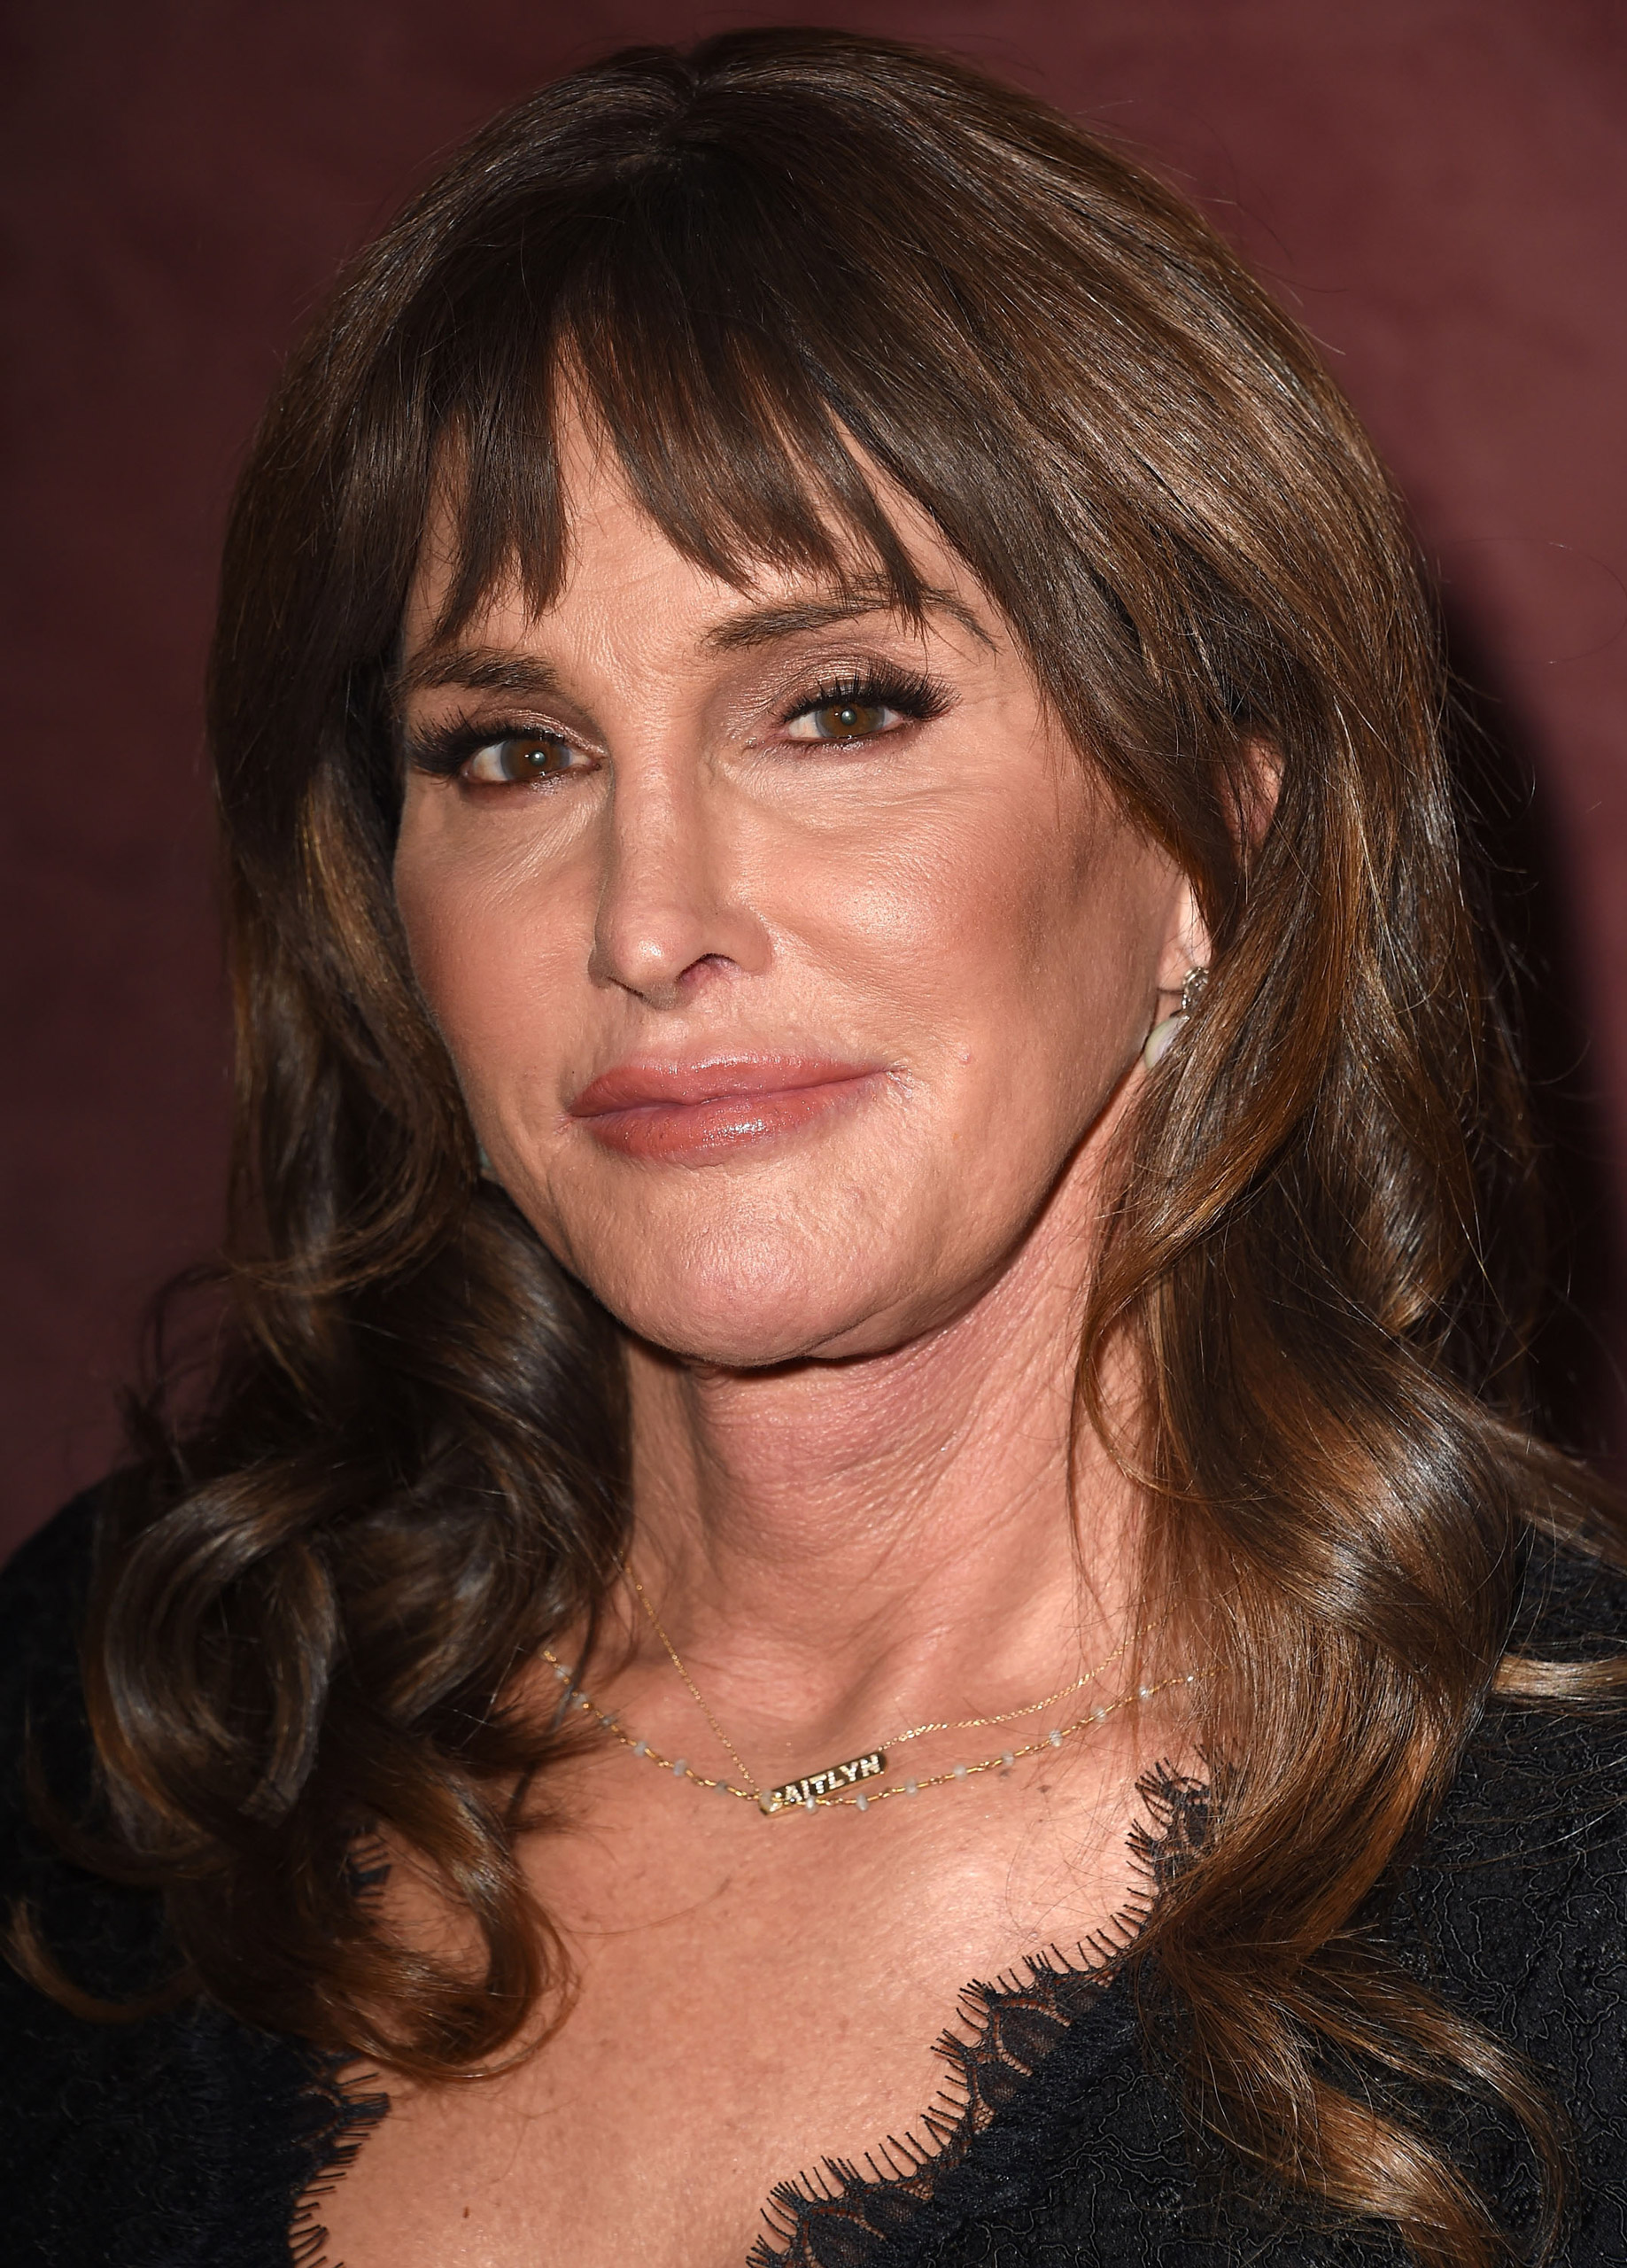 Caitlyn Jenner Hosts Special Screening Of  Tangerine  at Landmark Nuart Theatre in Los Angeles on Jan. 4, 2016.